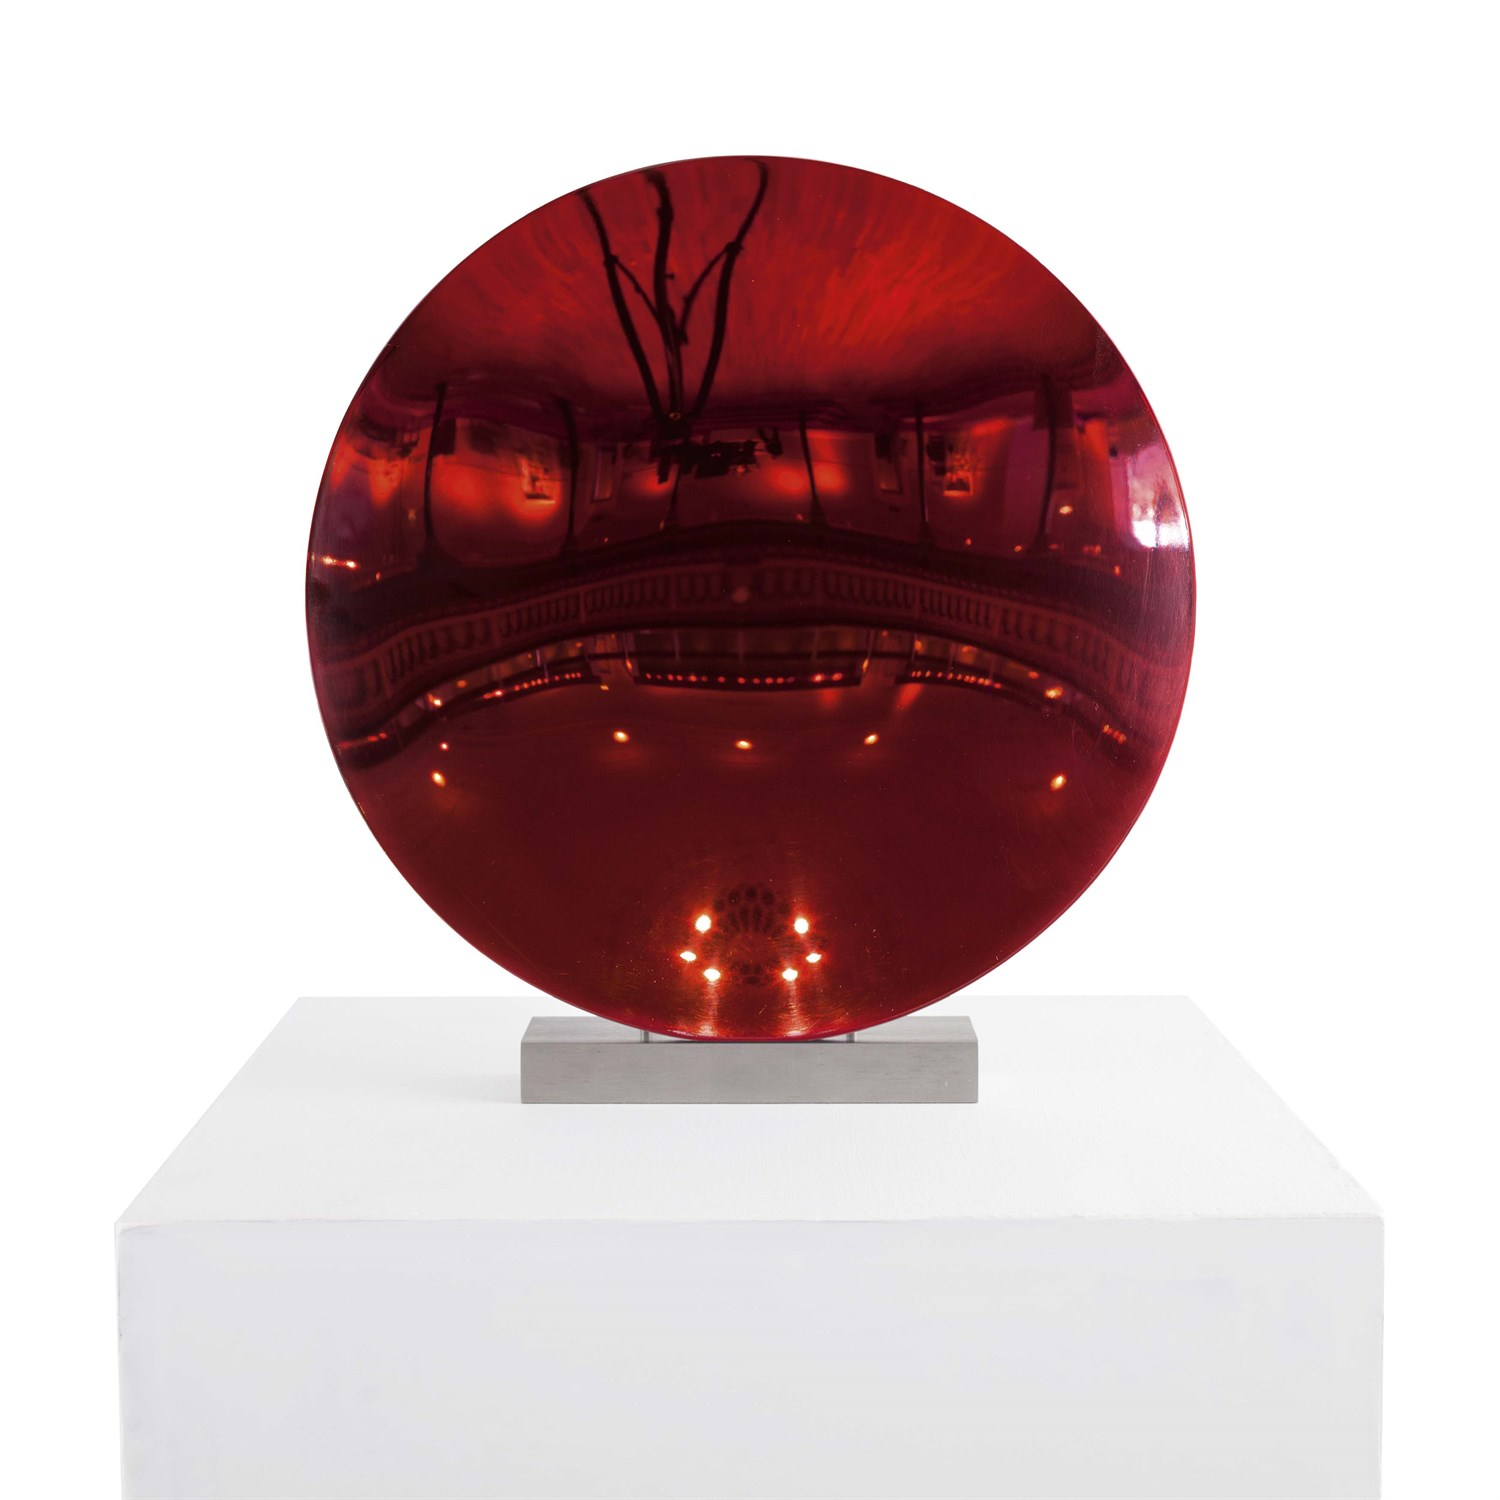 78 - ANISH KAPOOR C.B.E., R.A. (INDIAN/BRITISH B. 1954)